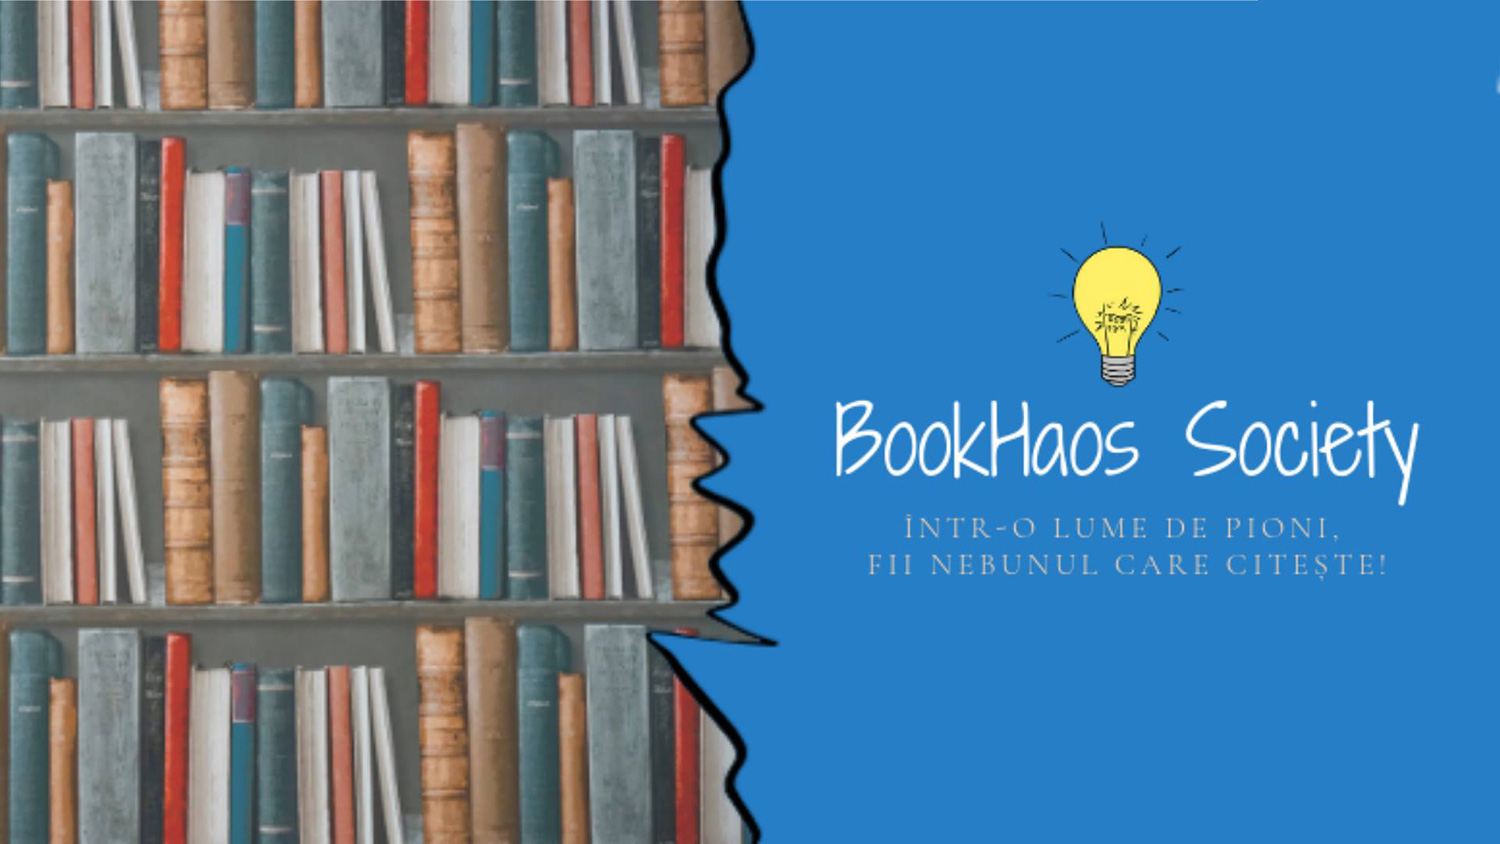 BookHaos Society